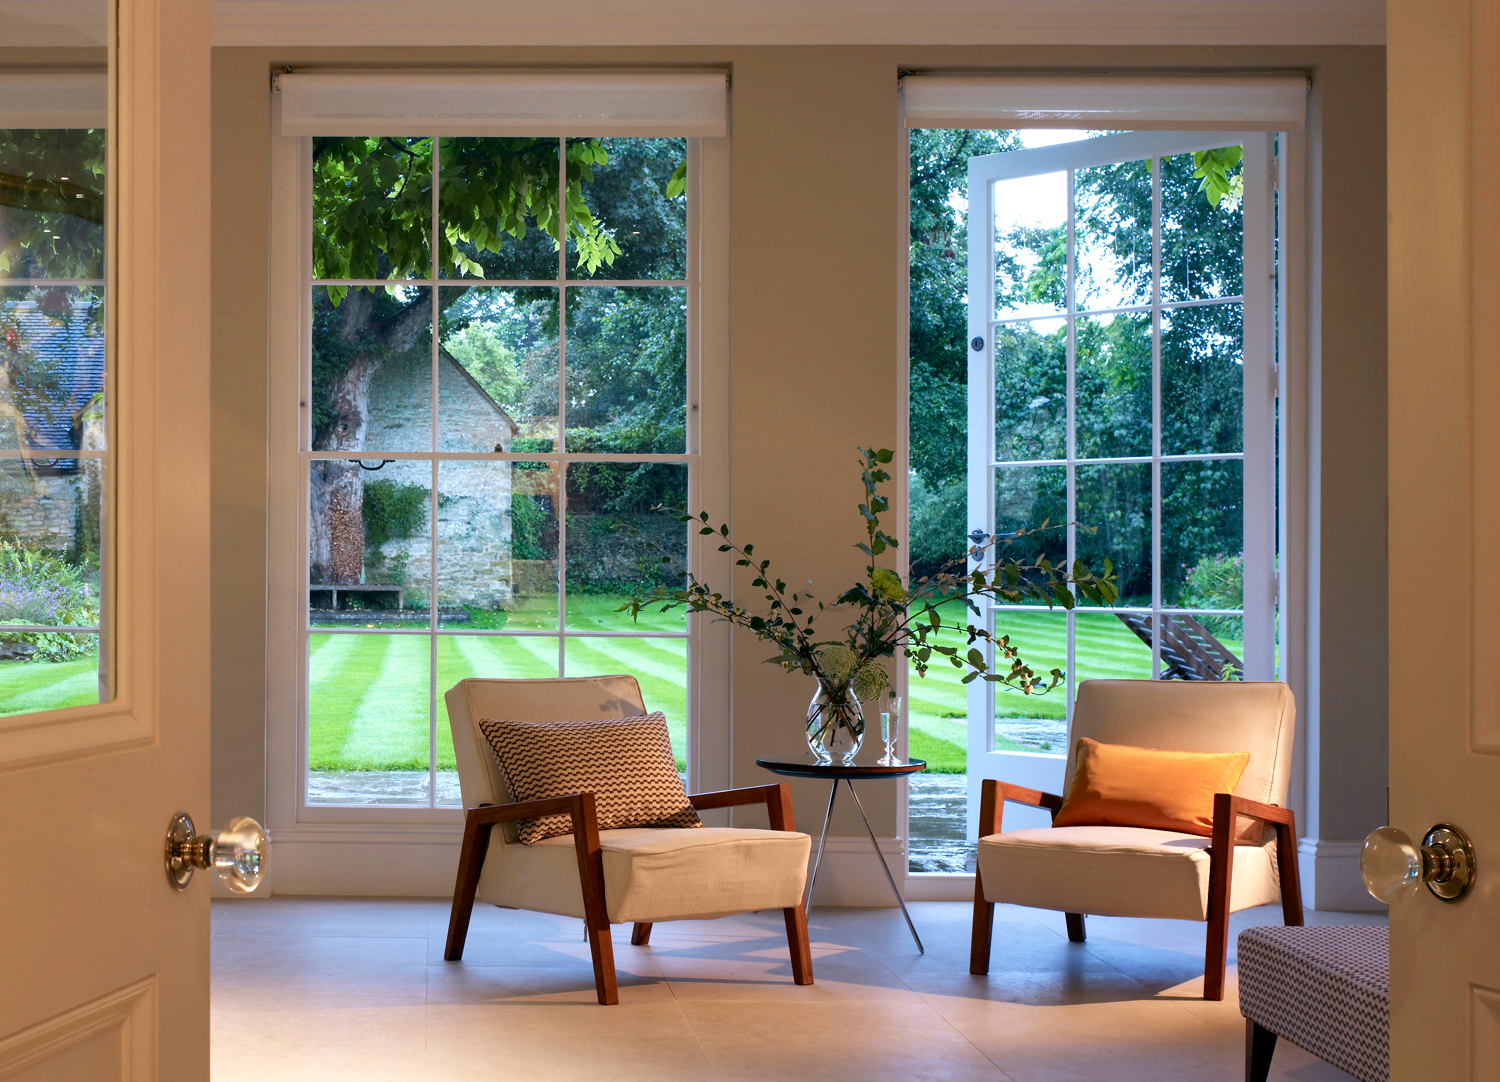 Jill Scholes Interior Design, Oxfordshire Country House, sitting room with view to garden